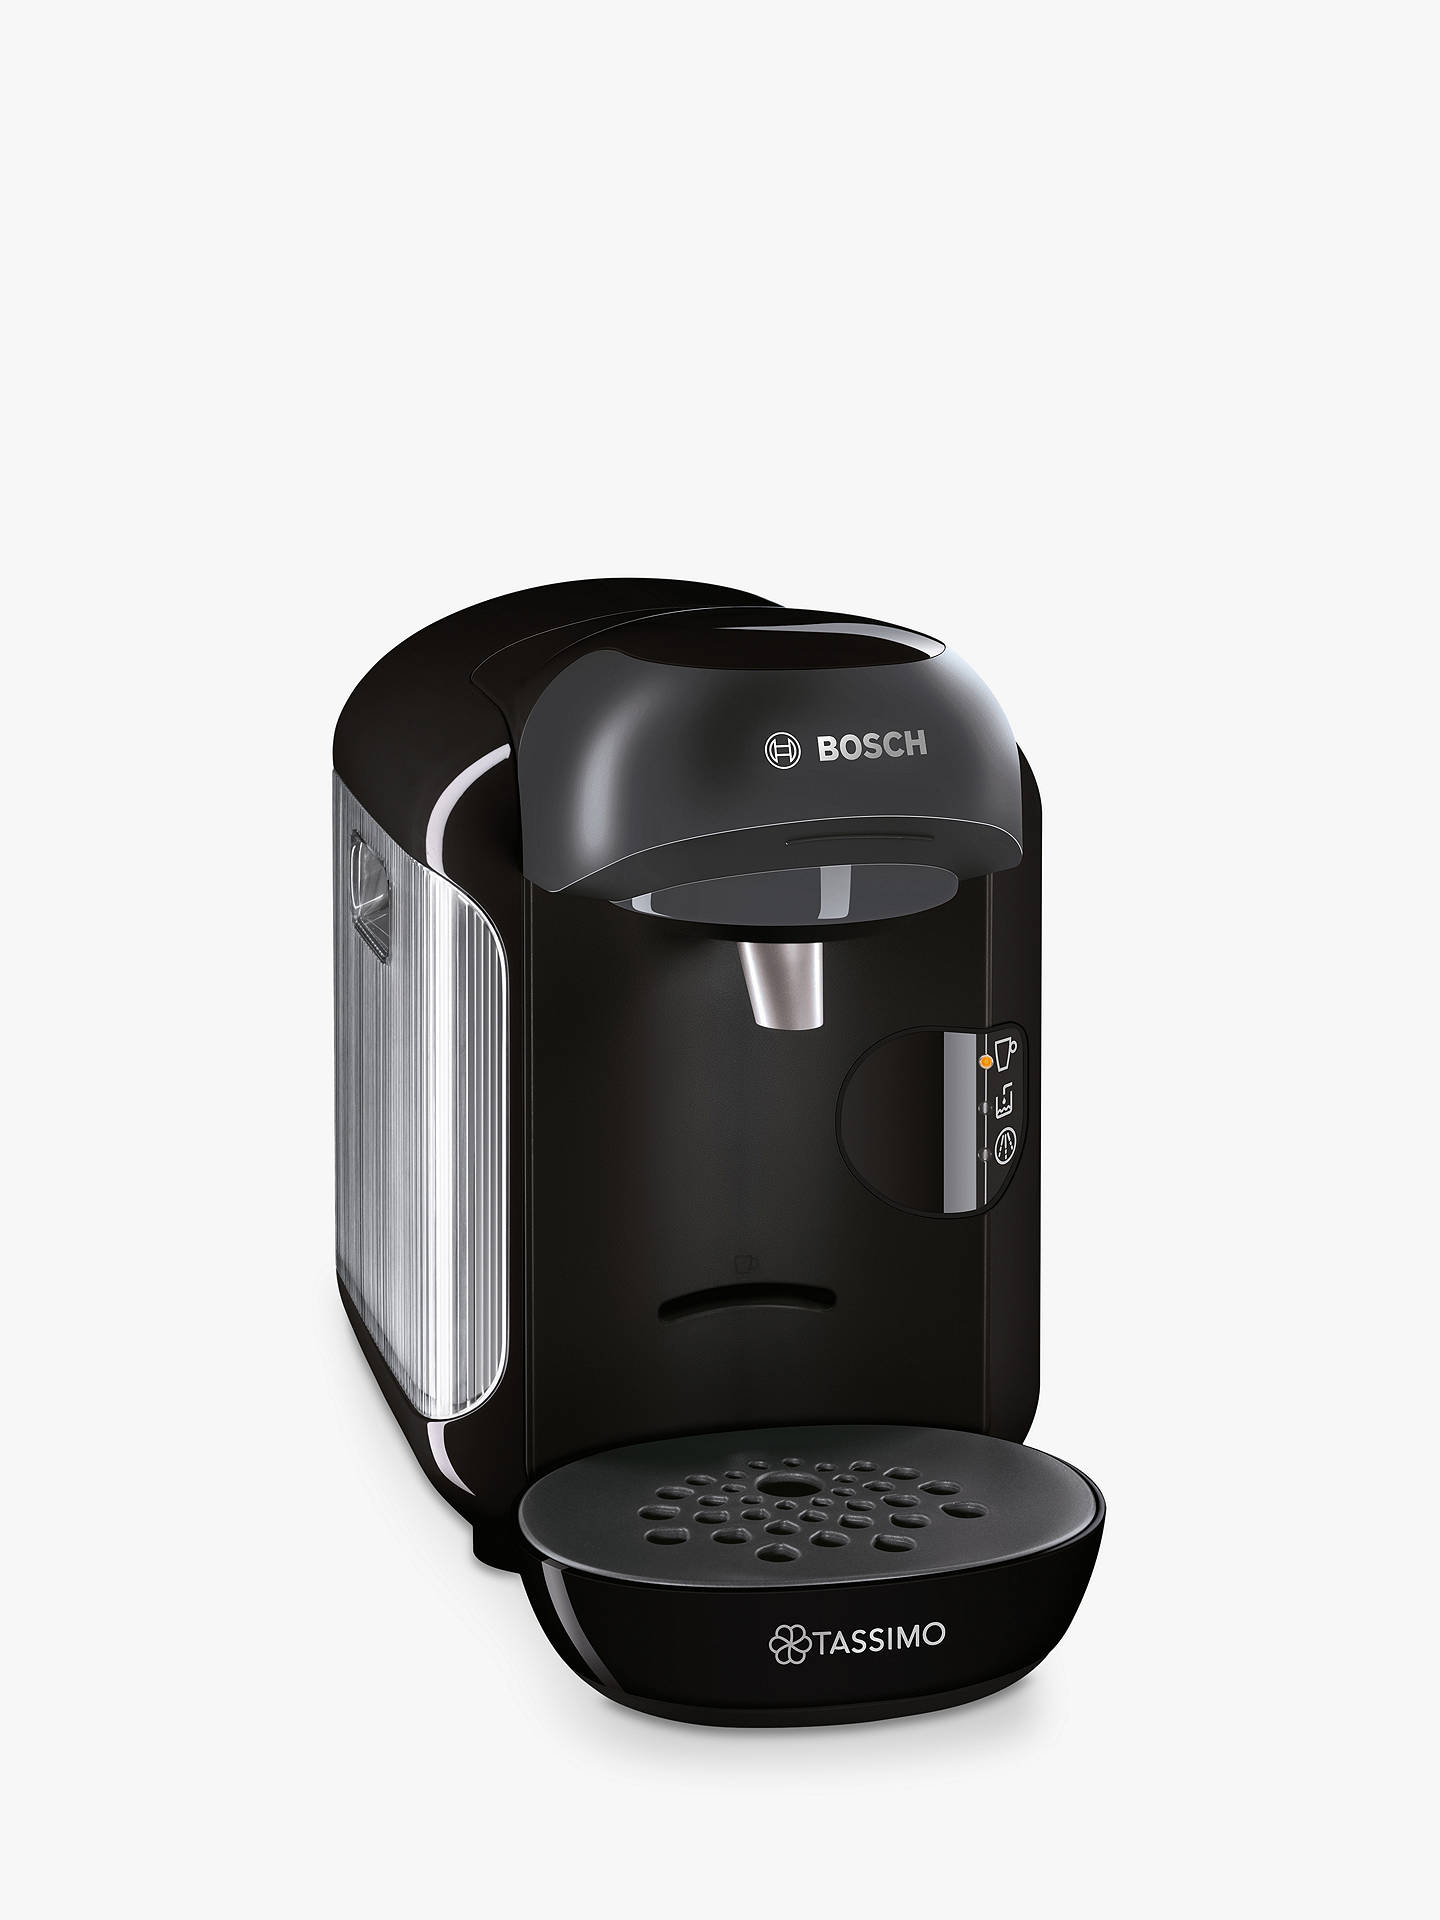 Buy Tassimo Vivy Coffee Machine by Bosch, Black Online at johnlewis.com